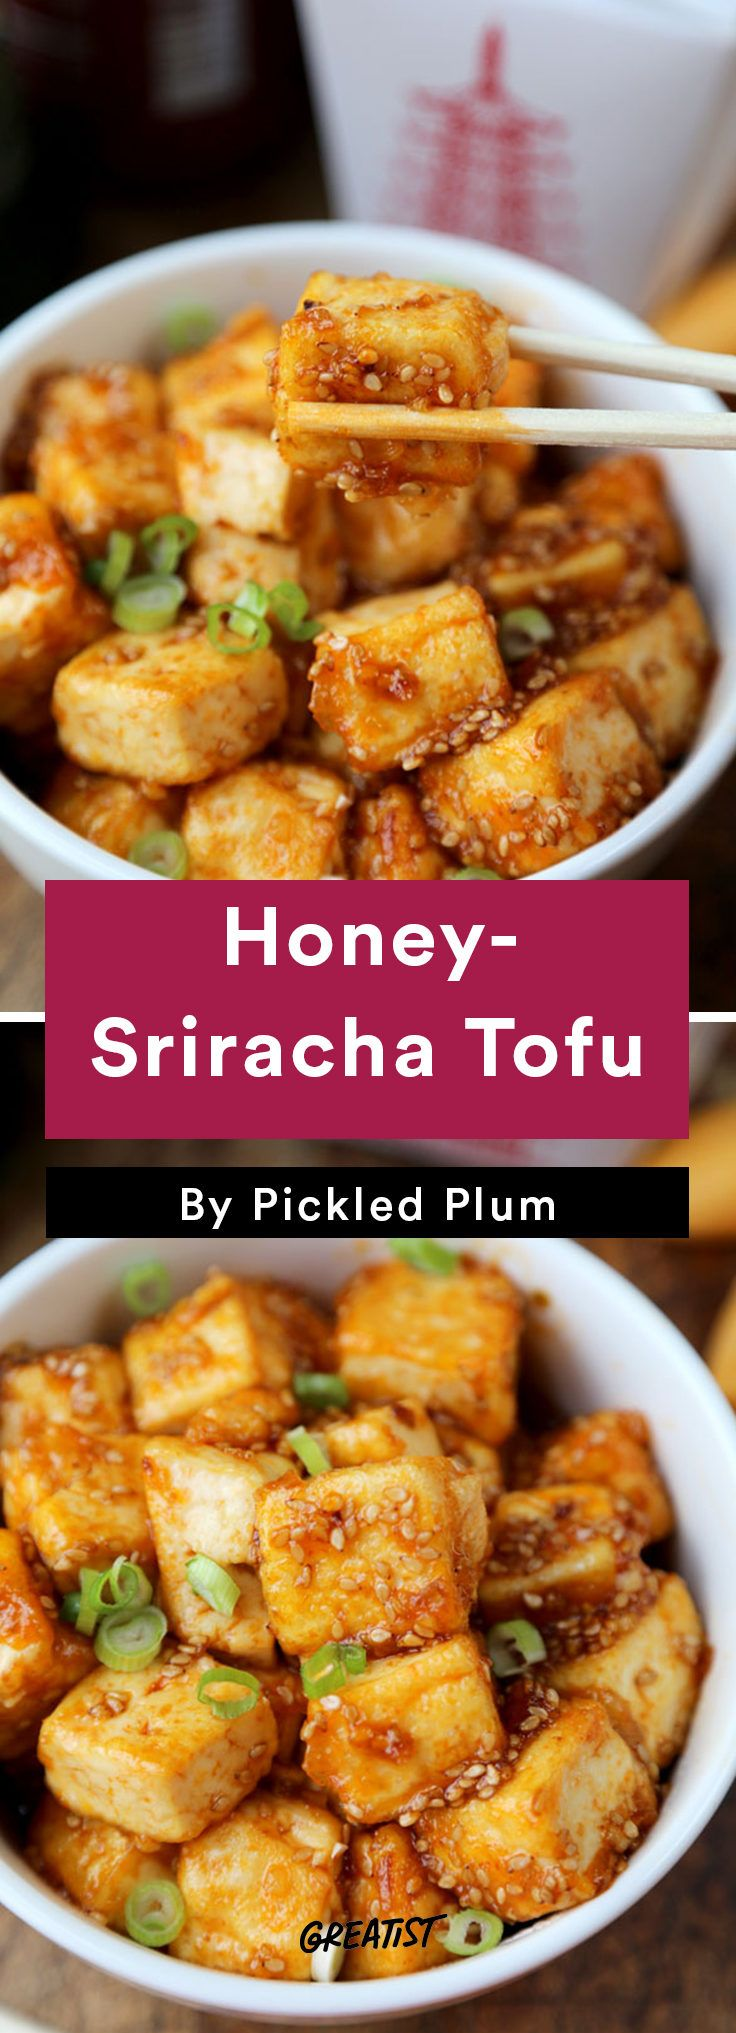 8. Honey-Sriracha Tofu #greatist http://greatist.com/eat/easy-stir-fry-recipes-to-make-during-the-week